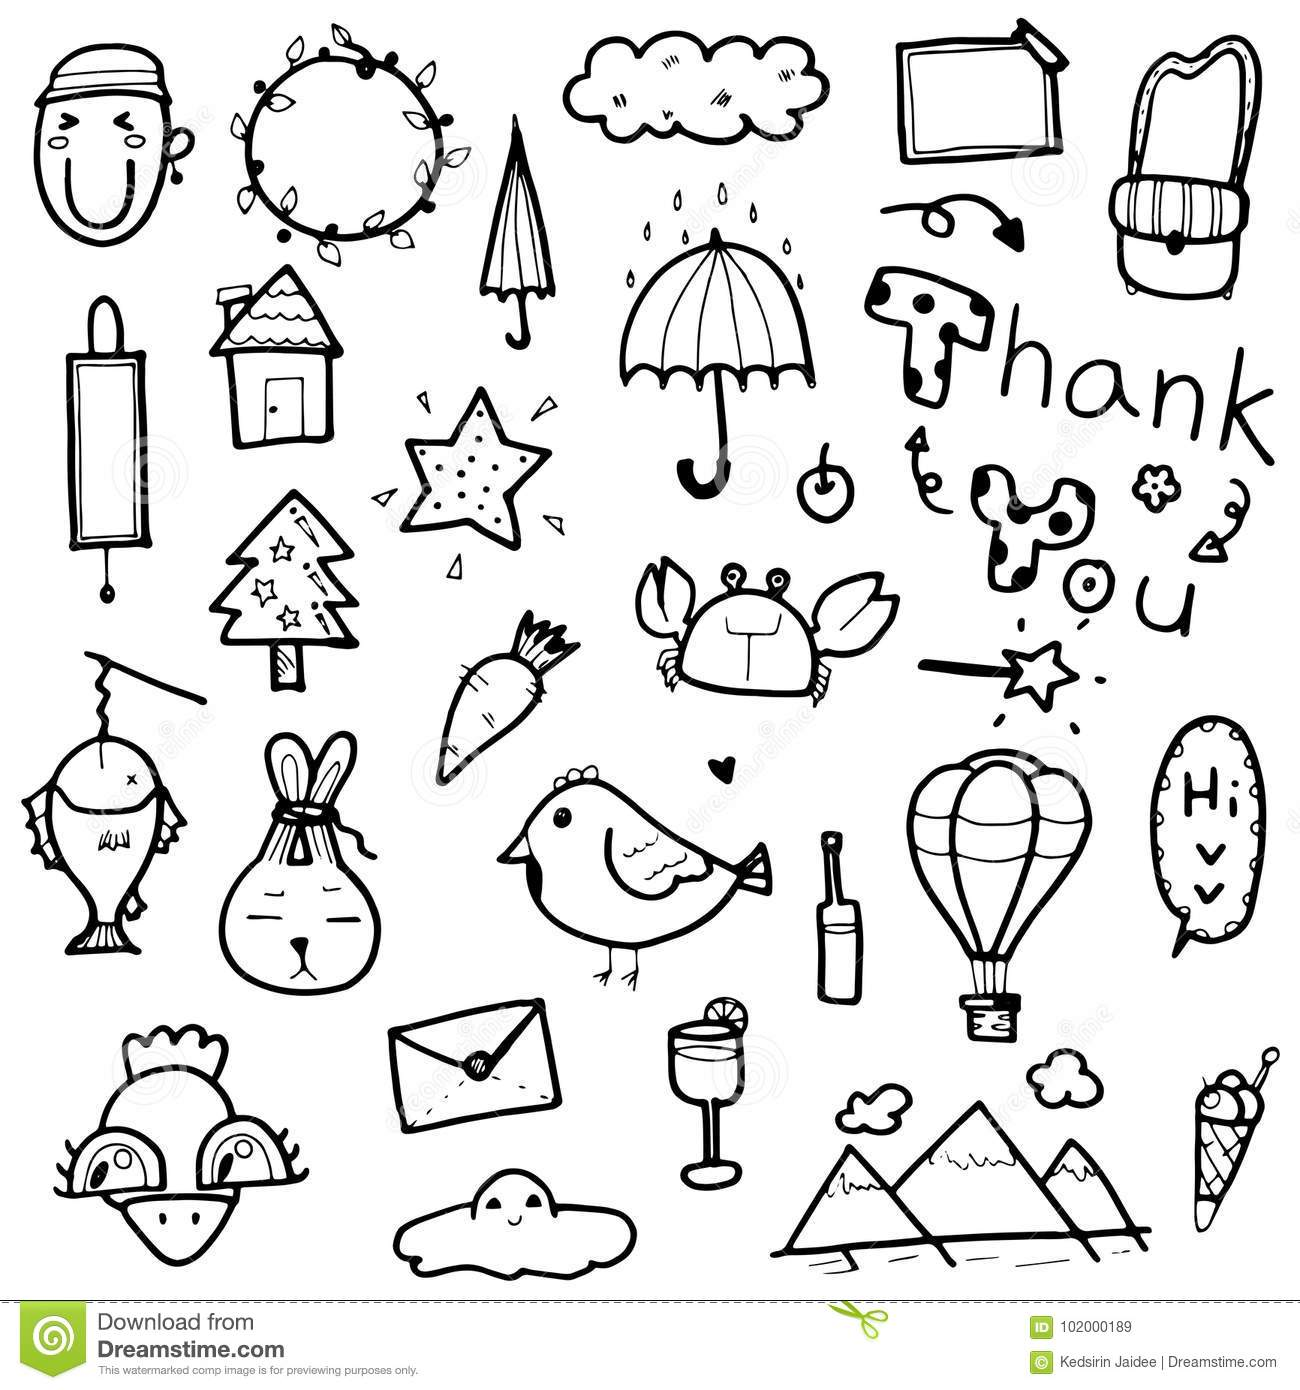 doodles cute hand drawn vector collection elements word illustration animal tree card objects prints character preview